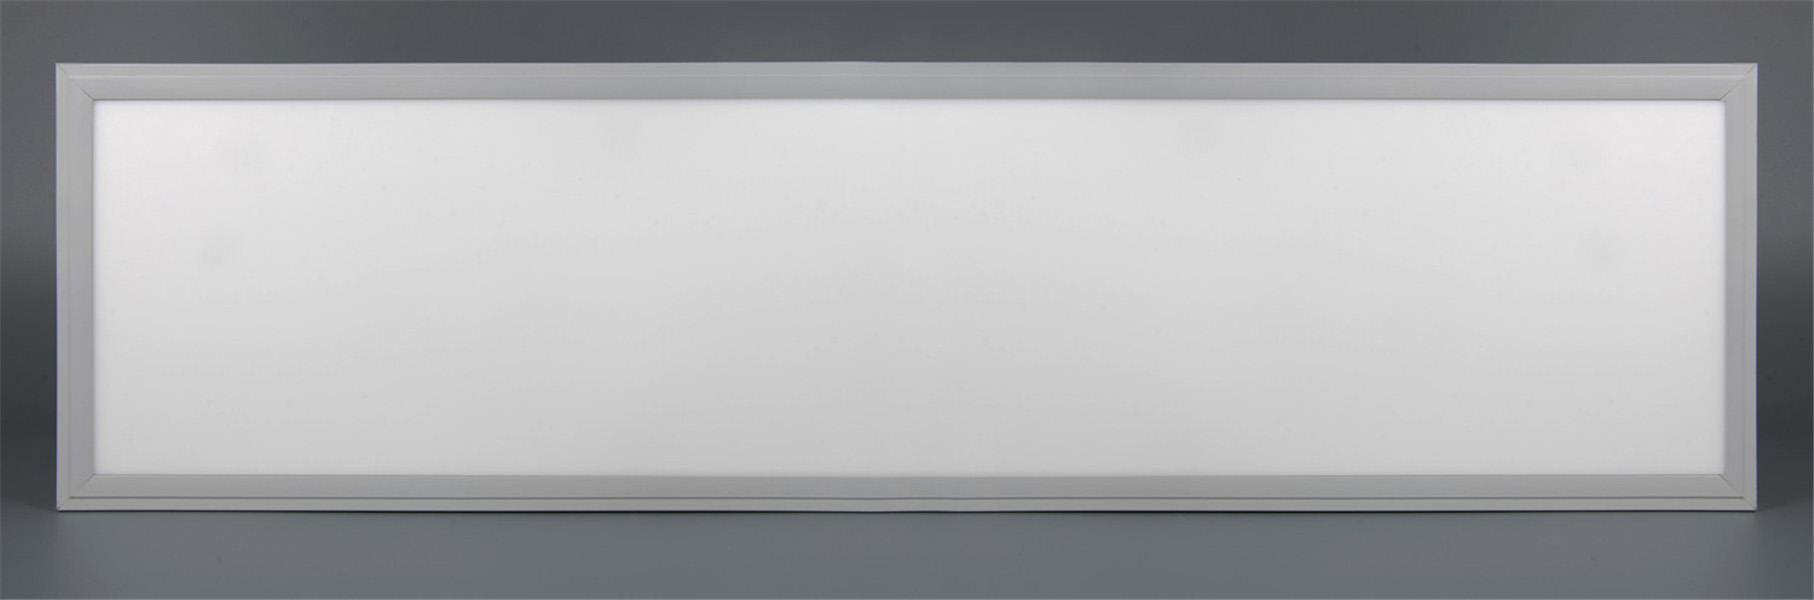 Professional 30120 48W LED Panel Light